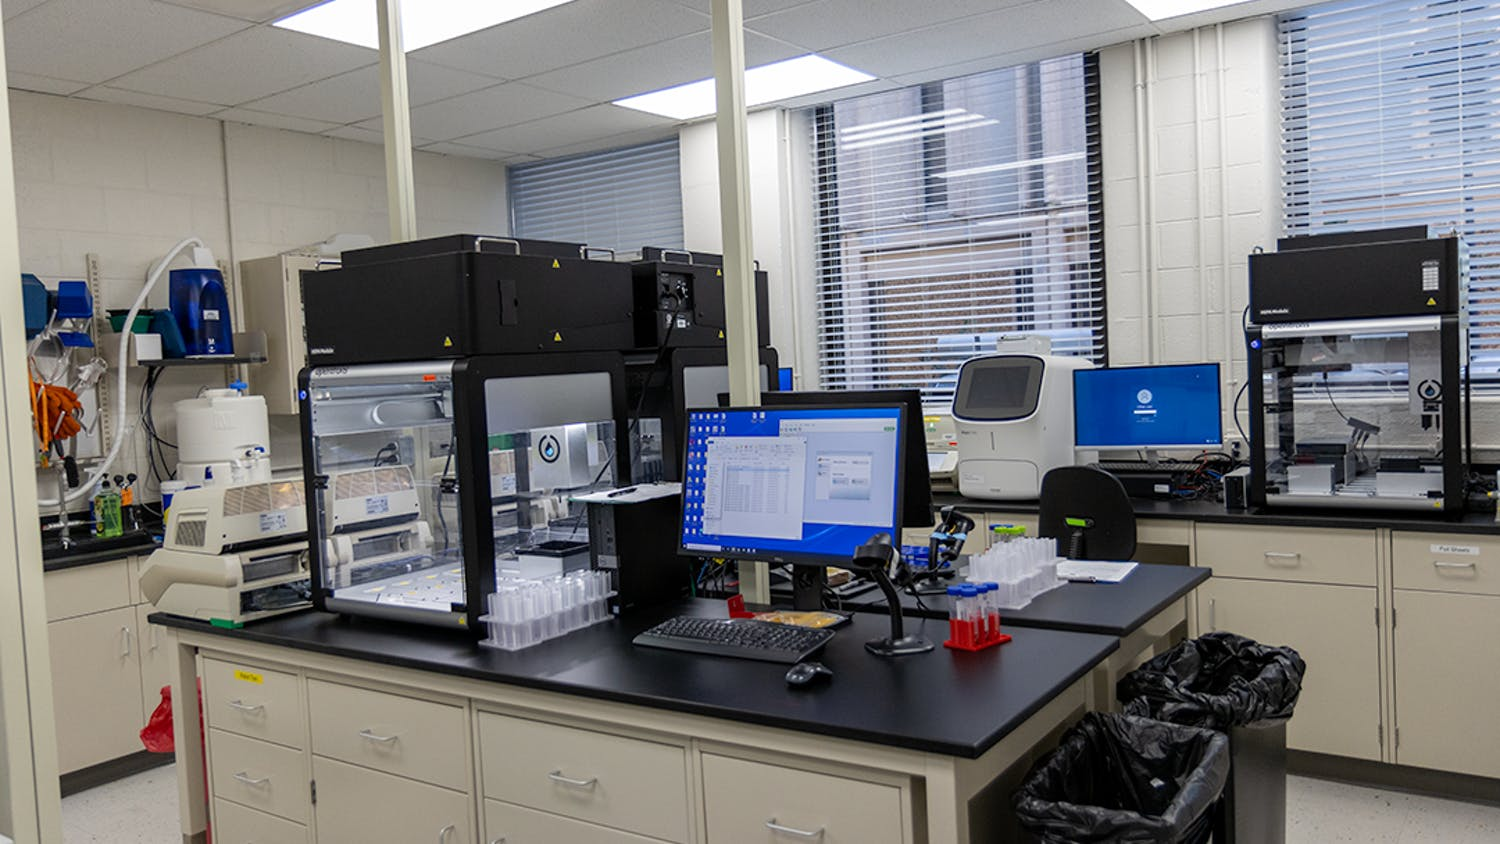 Three Opentrons OT-2 liquid handlers wait for vials to be scanned and placed inside. The recent expansion to three units allows the laboratory to process samples faster.